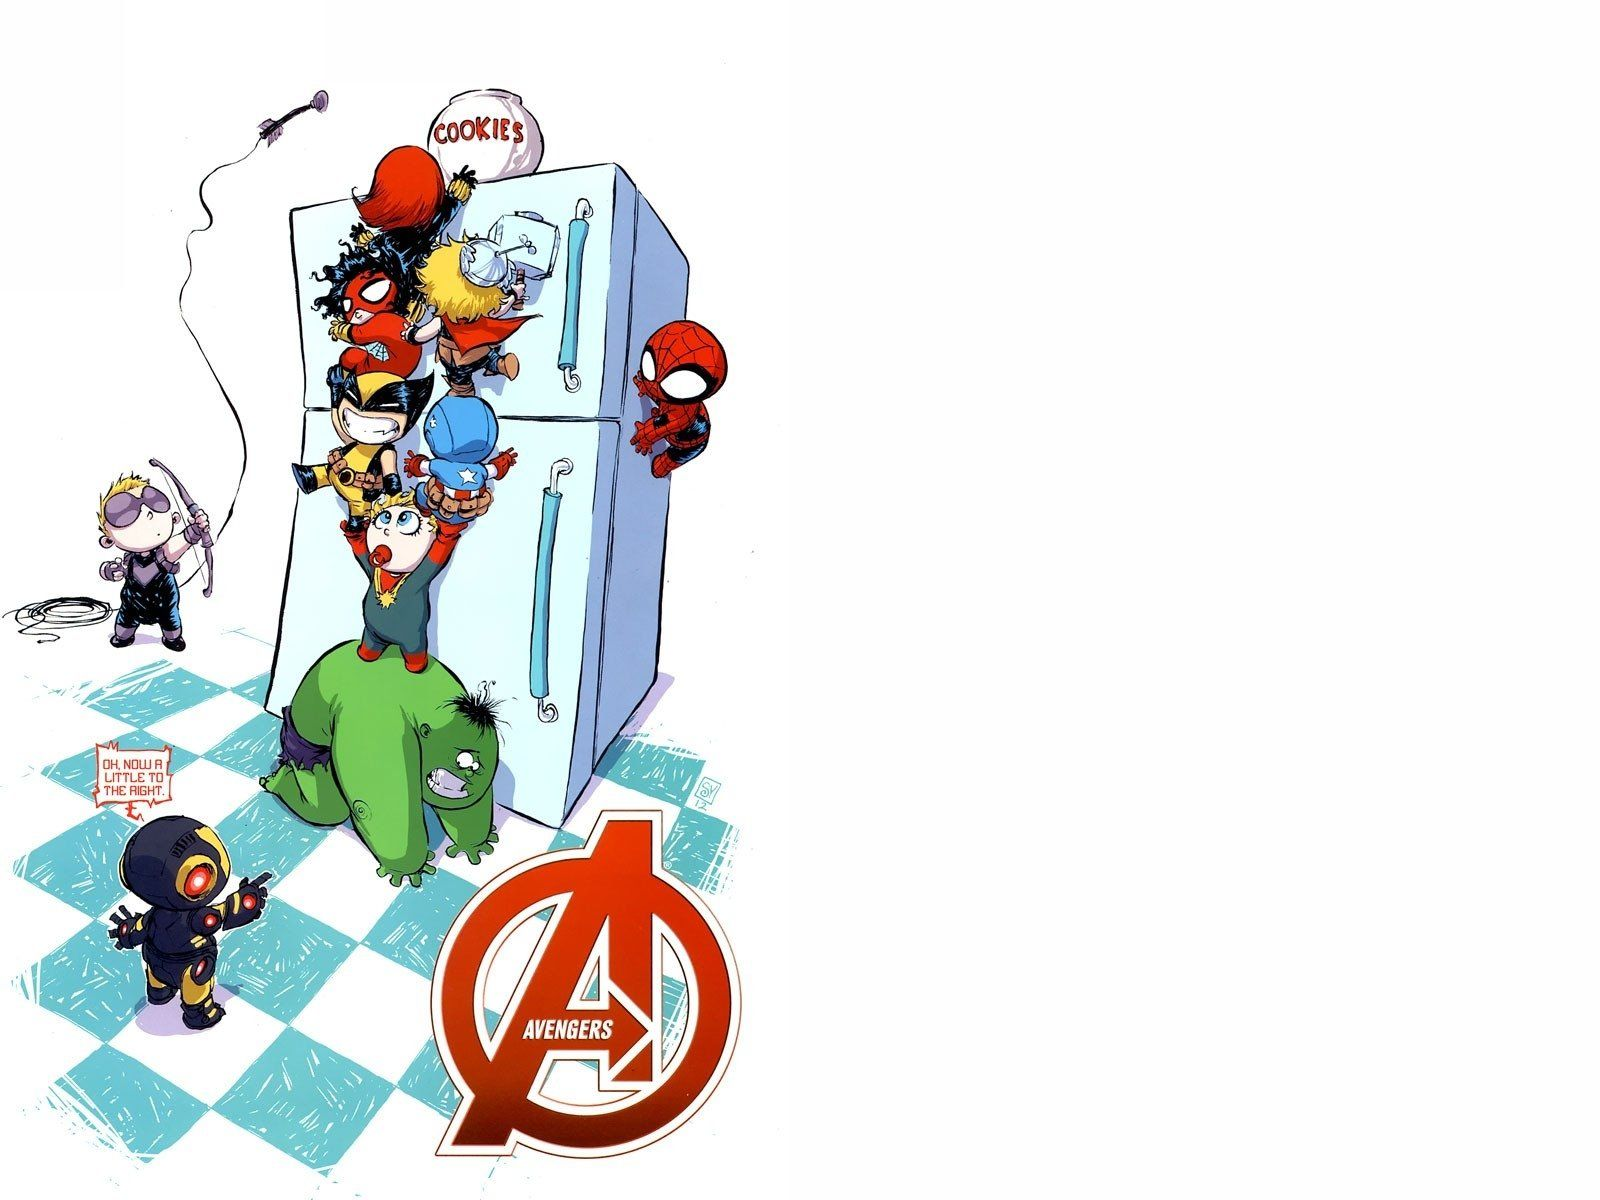 Funny Avengers Wallpapers - Top Free Funny Avengers